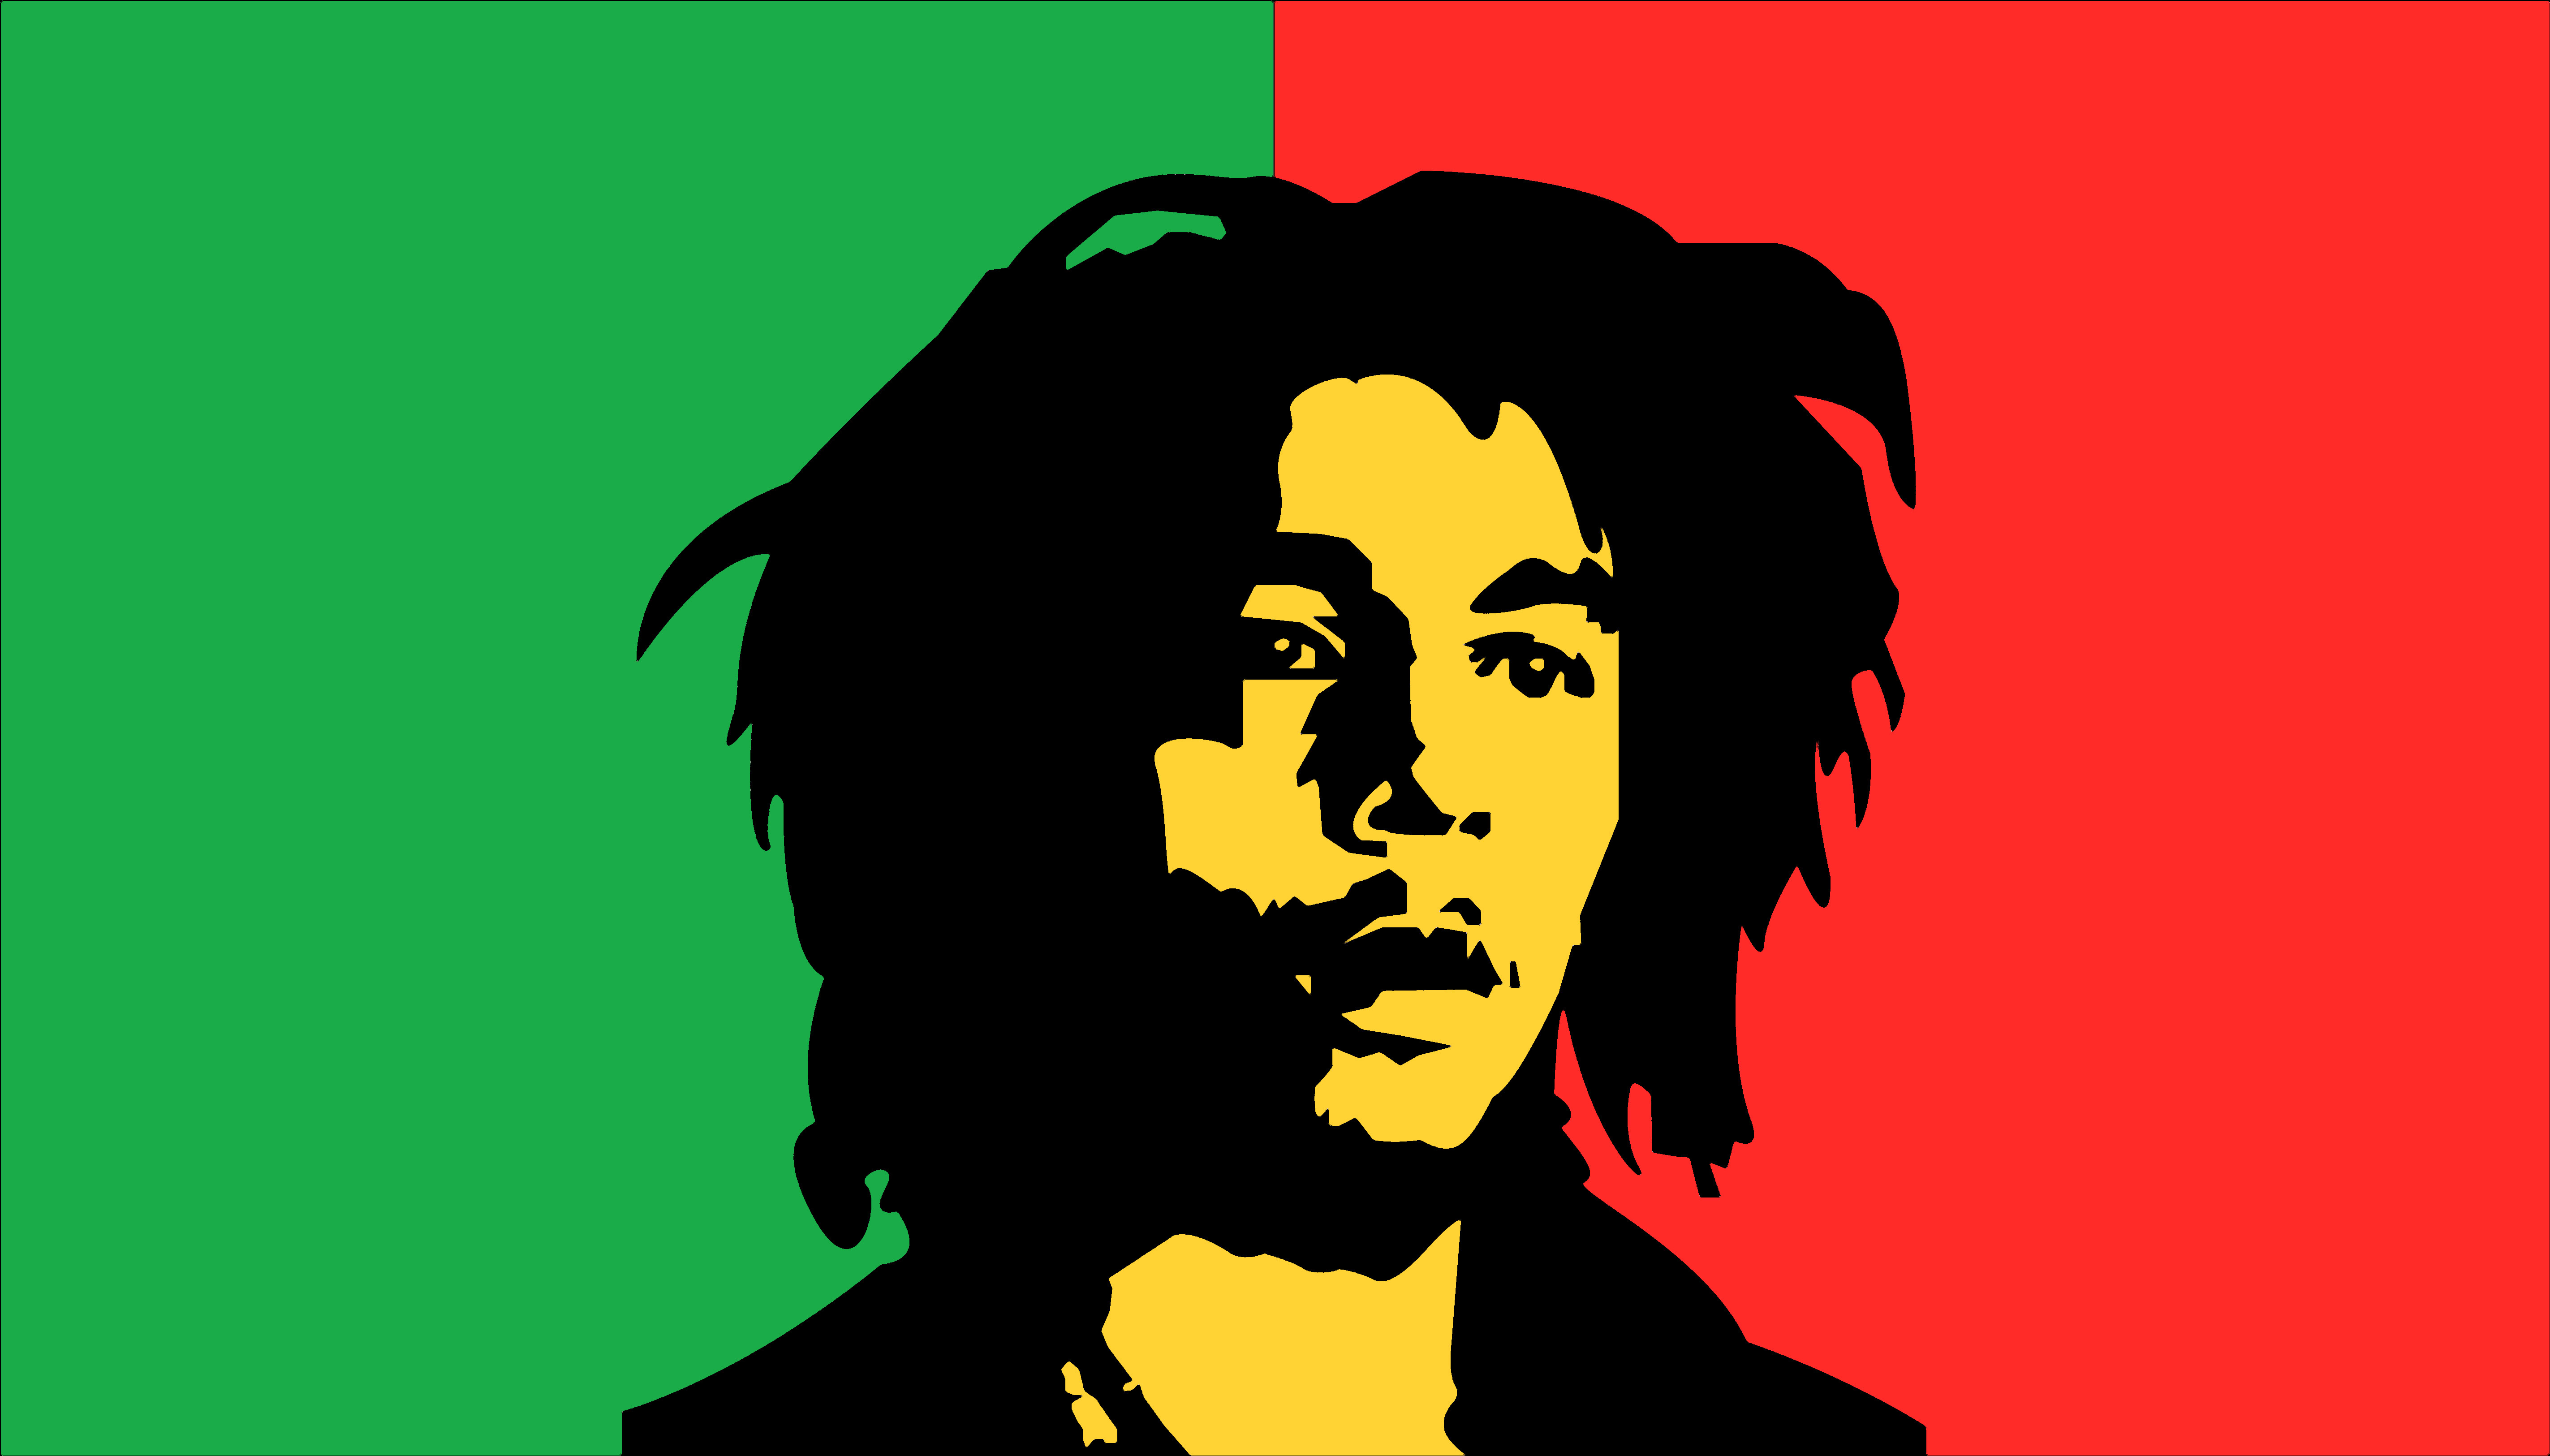 Rasta Love Wallpaper Hd : Bob Marley Wallpapers, Pictures, Images